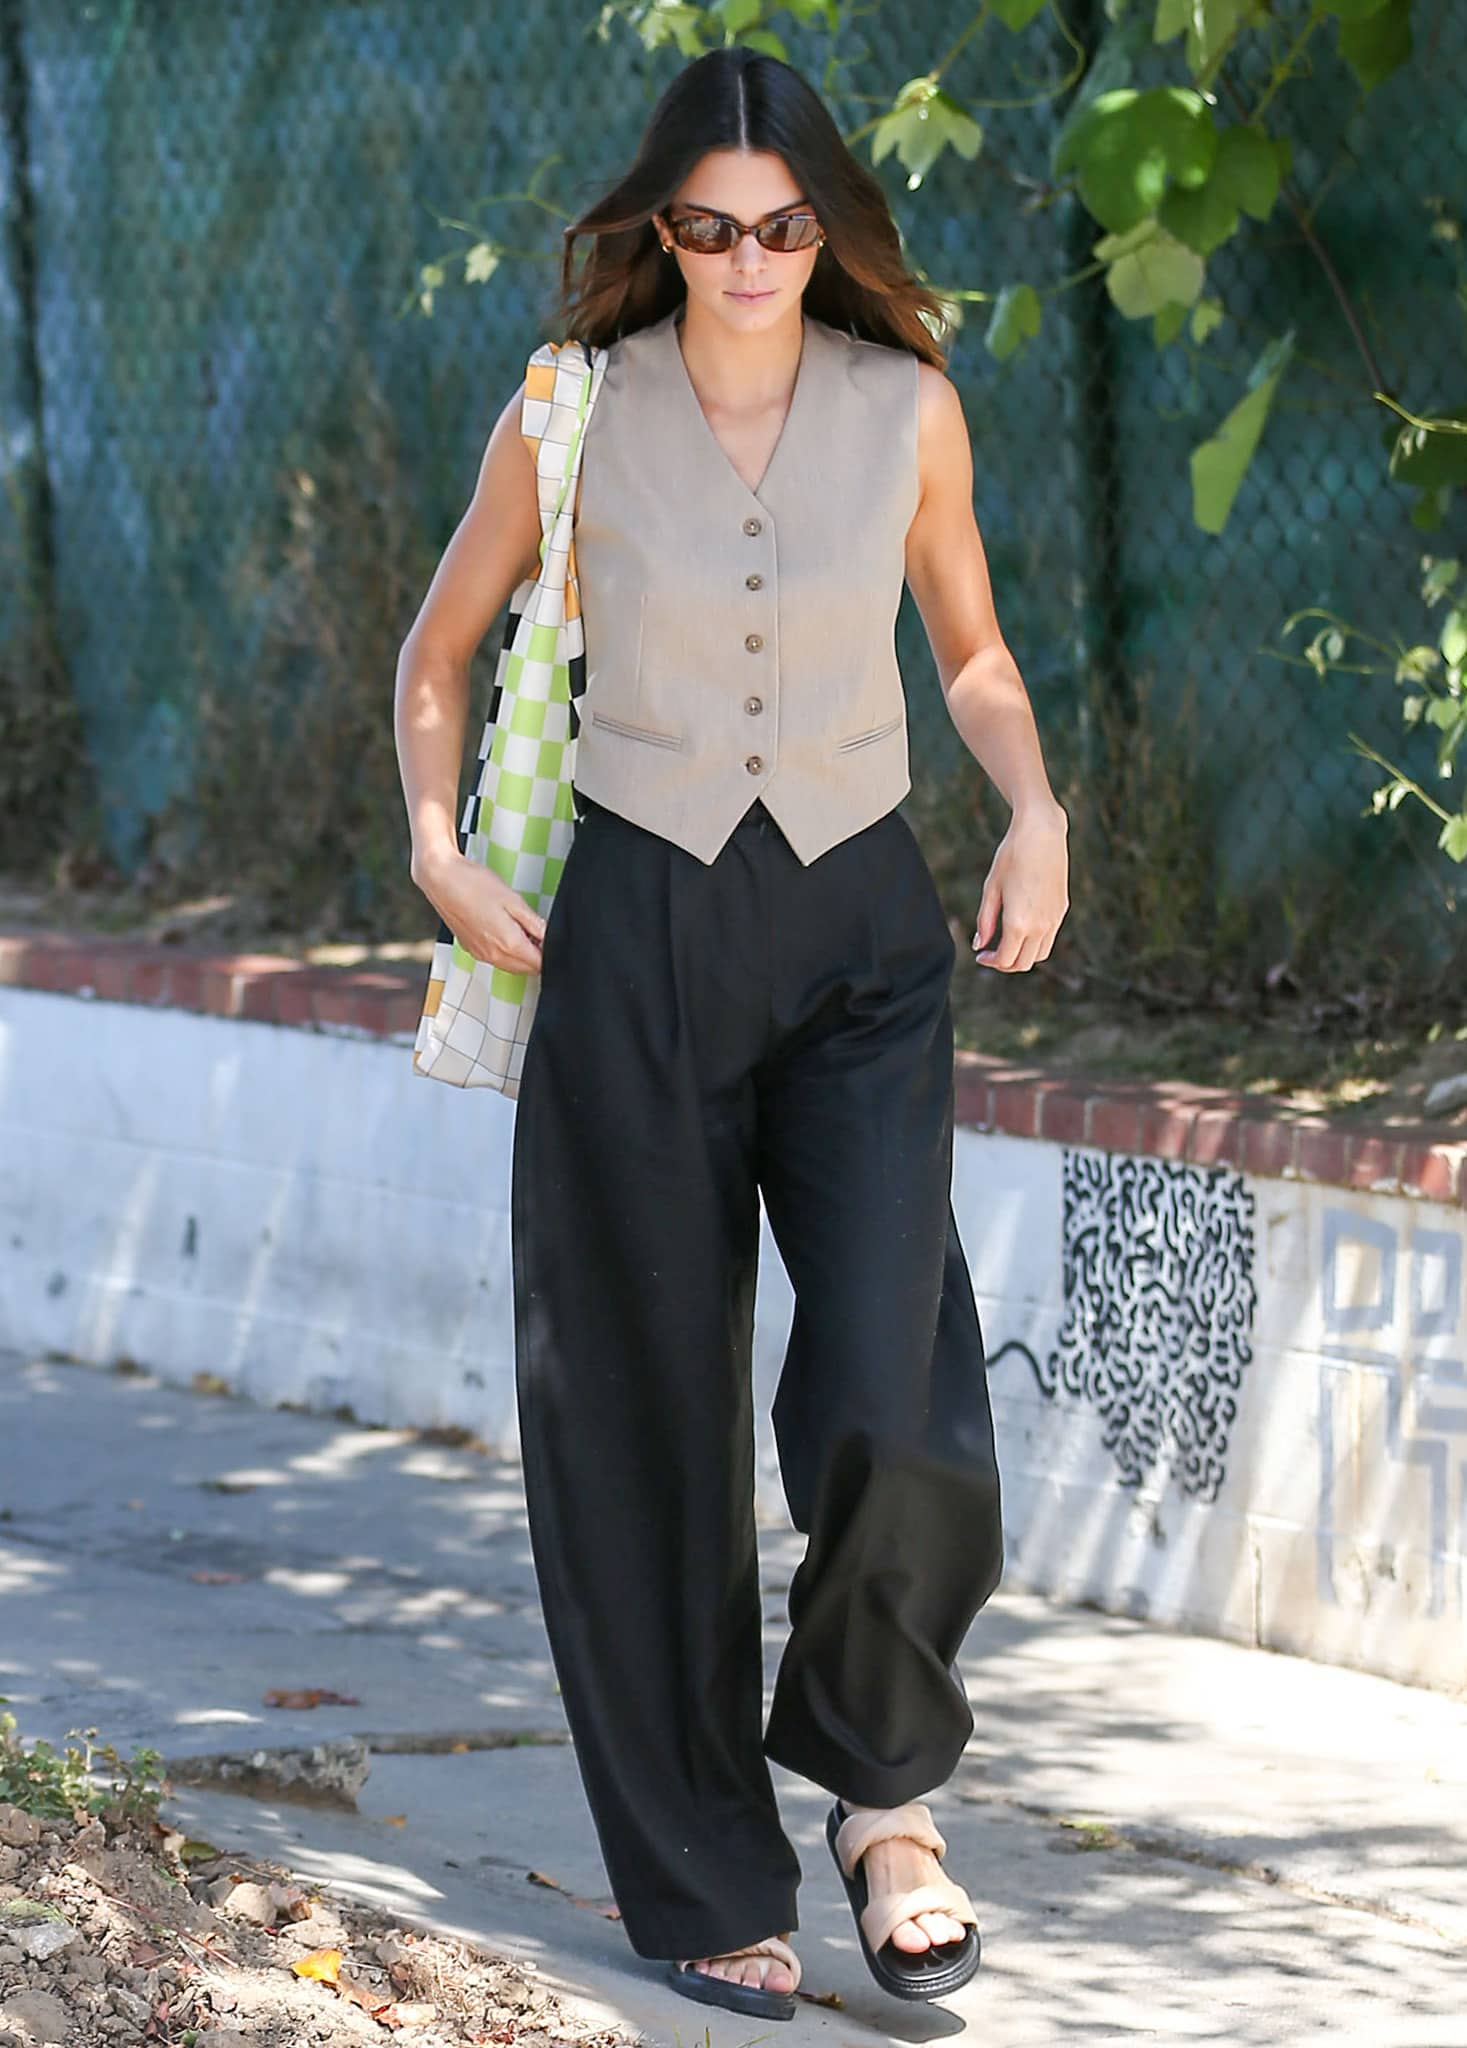 Kendall Jenner borrows from men's fashion with Daniele Alessandrini vest and Fiona O'Neill baggy pants